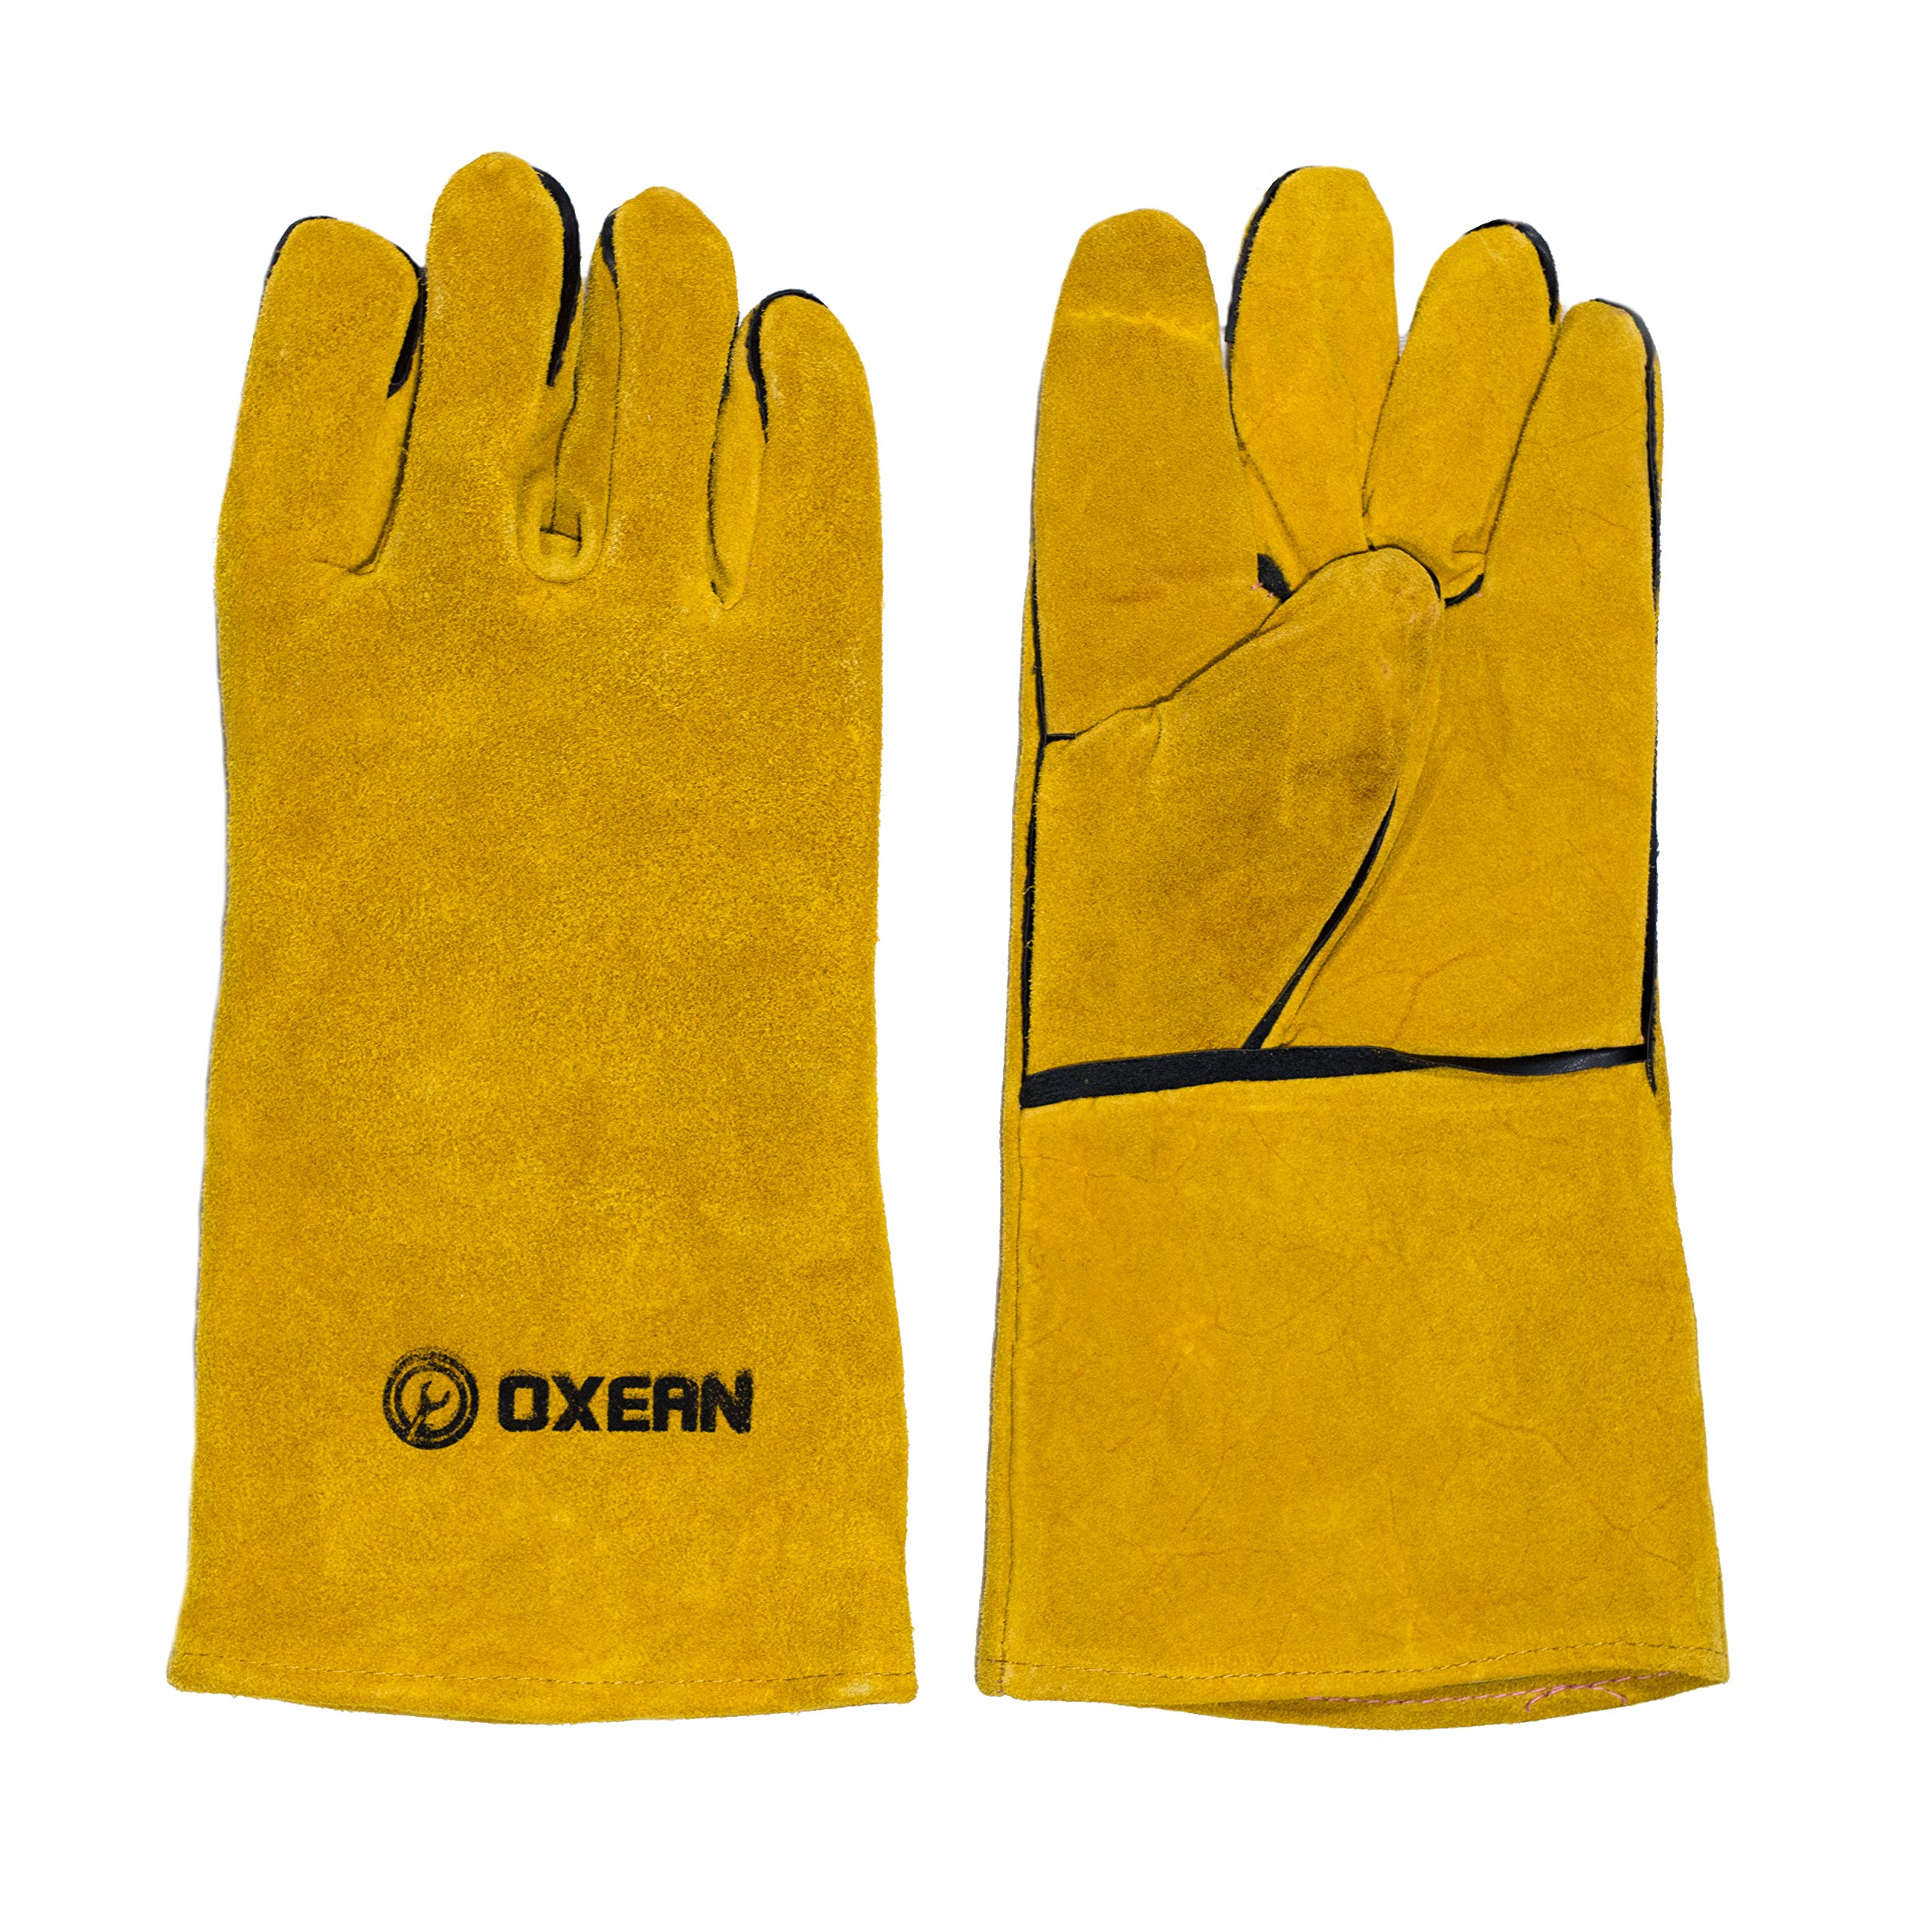 Oxean Professional Leather Welding Safety Gloves - 14'' Fire and Heat Resistant, Heavy Duty Double Stitching, Multi-Purpose - Work Glove